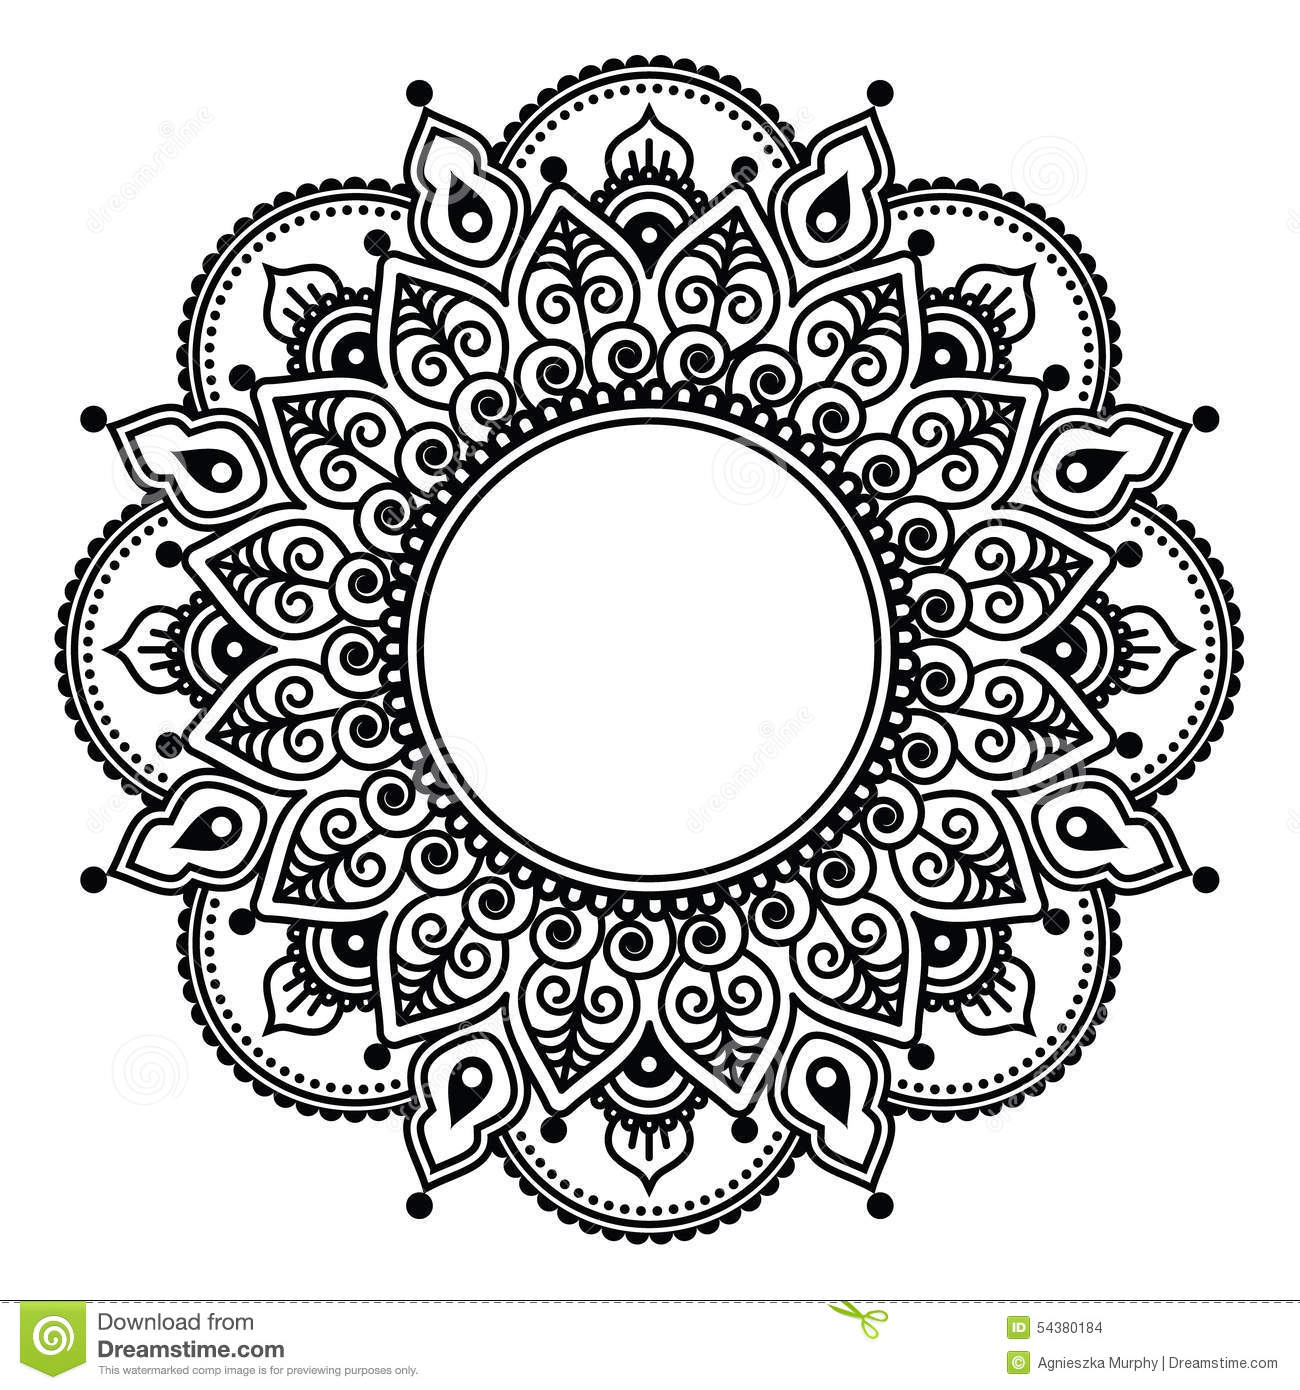 Henna Style Tattoos Lace Tattoo: Mehndi Lace, Indian Henna Tattoo Round Design Or Pattern